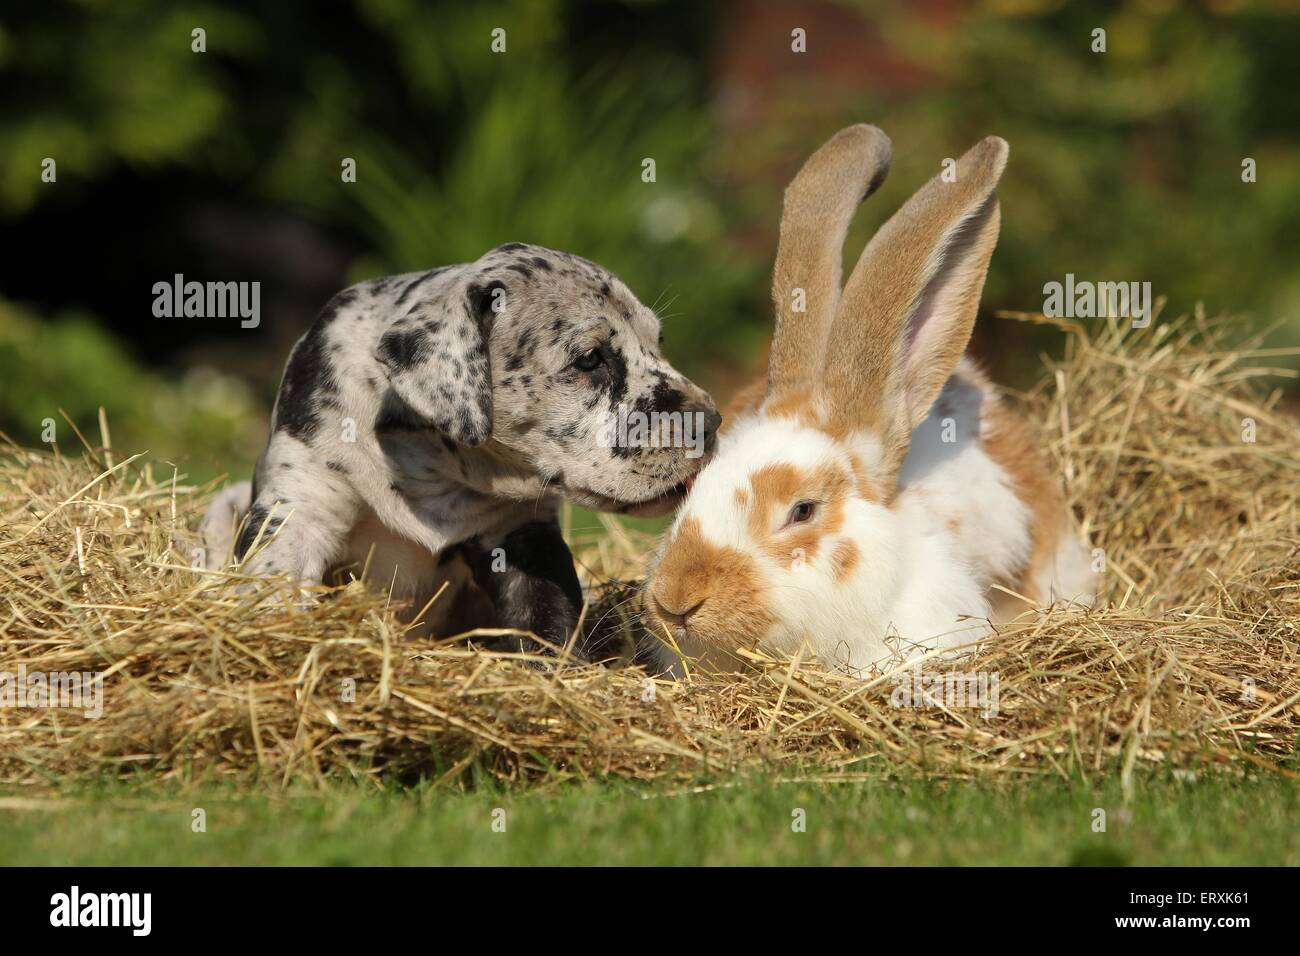 Great Dane Puppy and rabbit - Stock Image